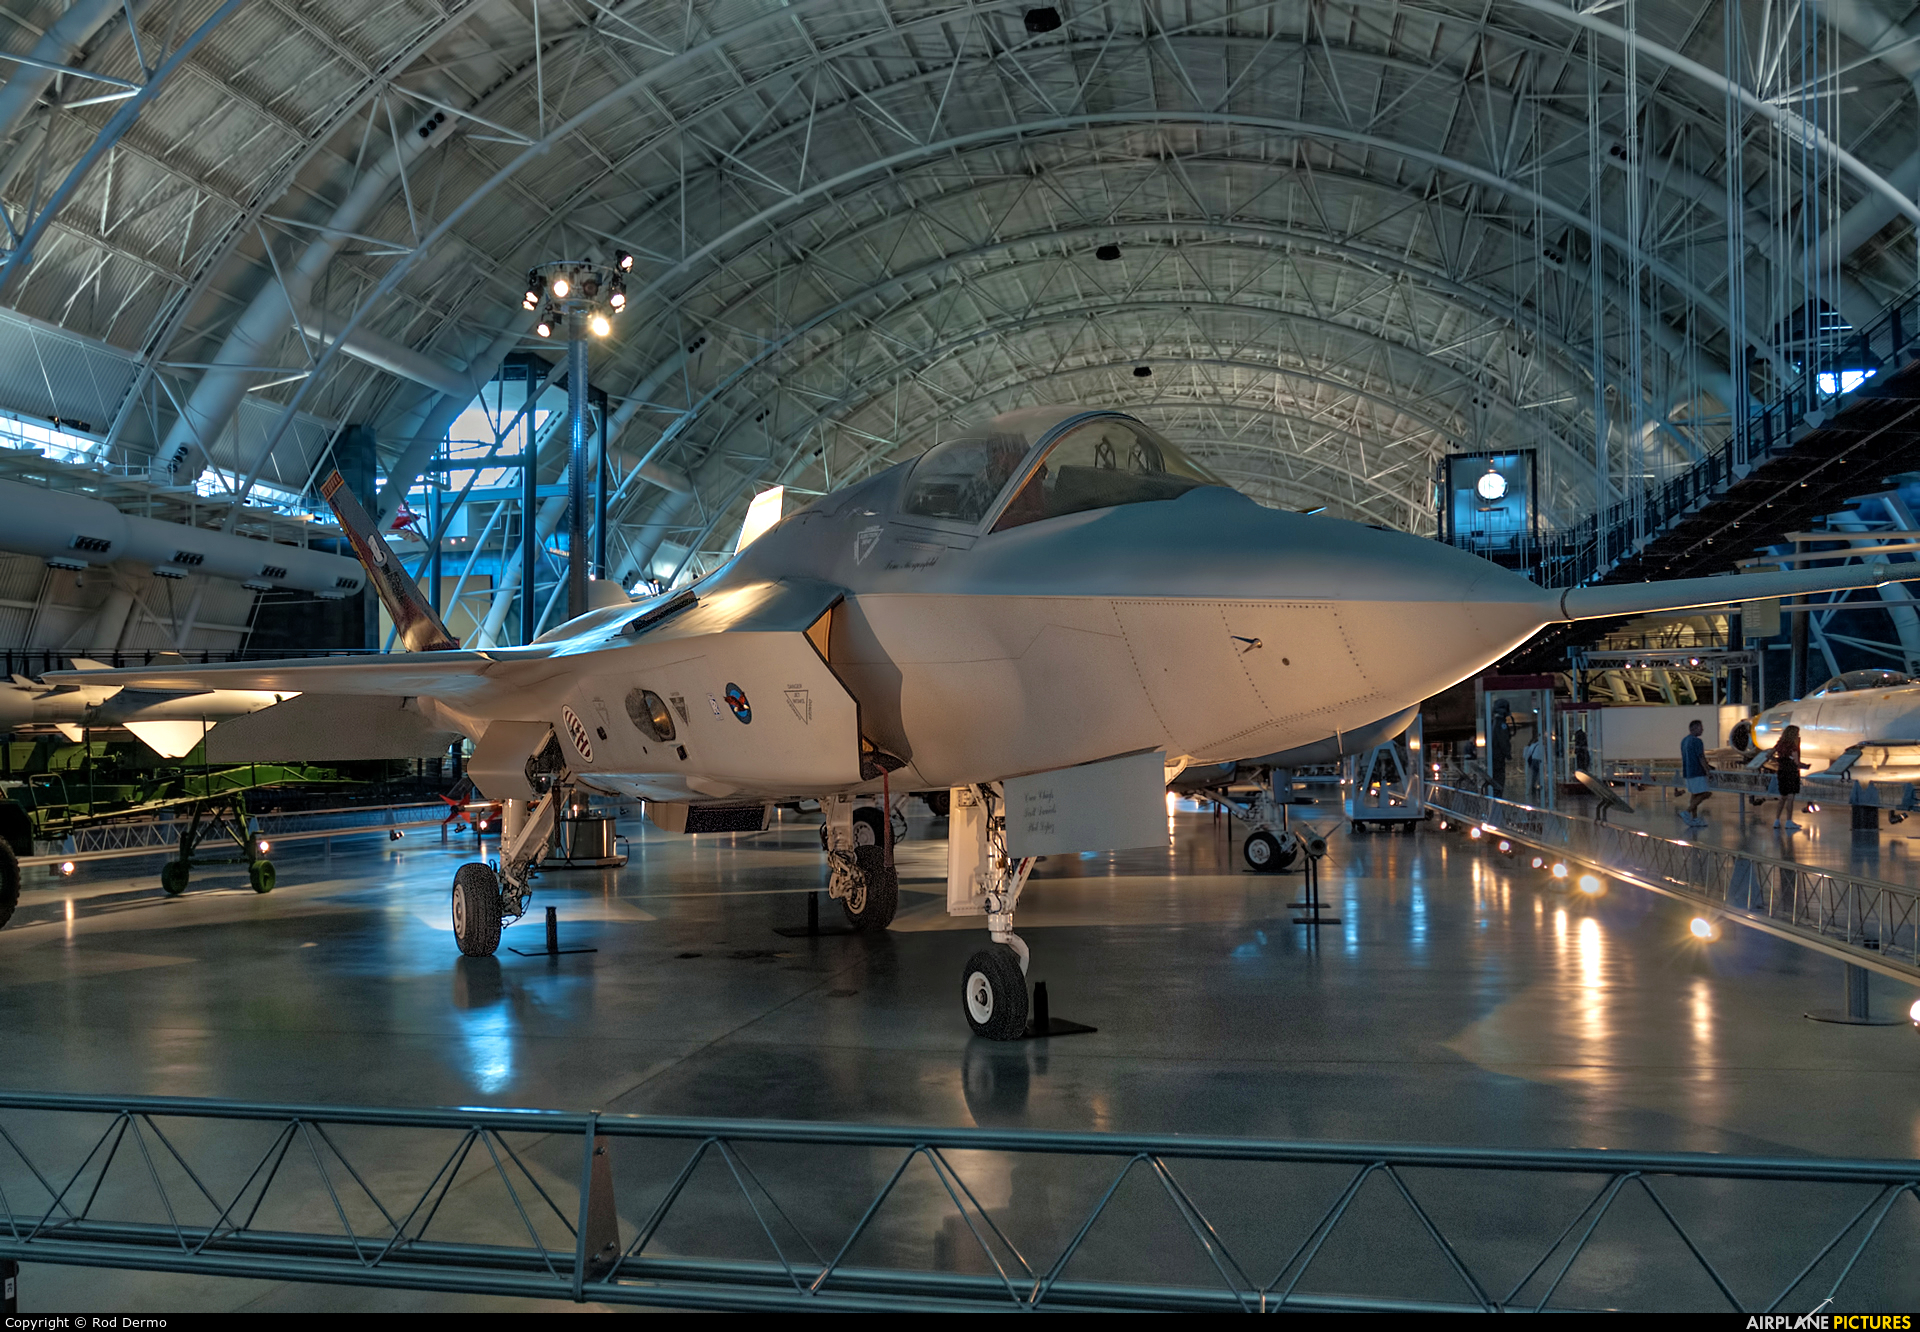 USA - Air Force 301 aircraft at Steven F. Udvar-Hazy Center